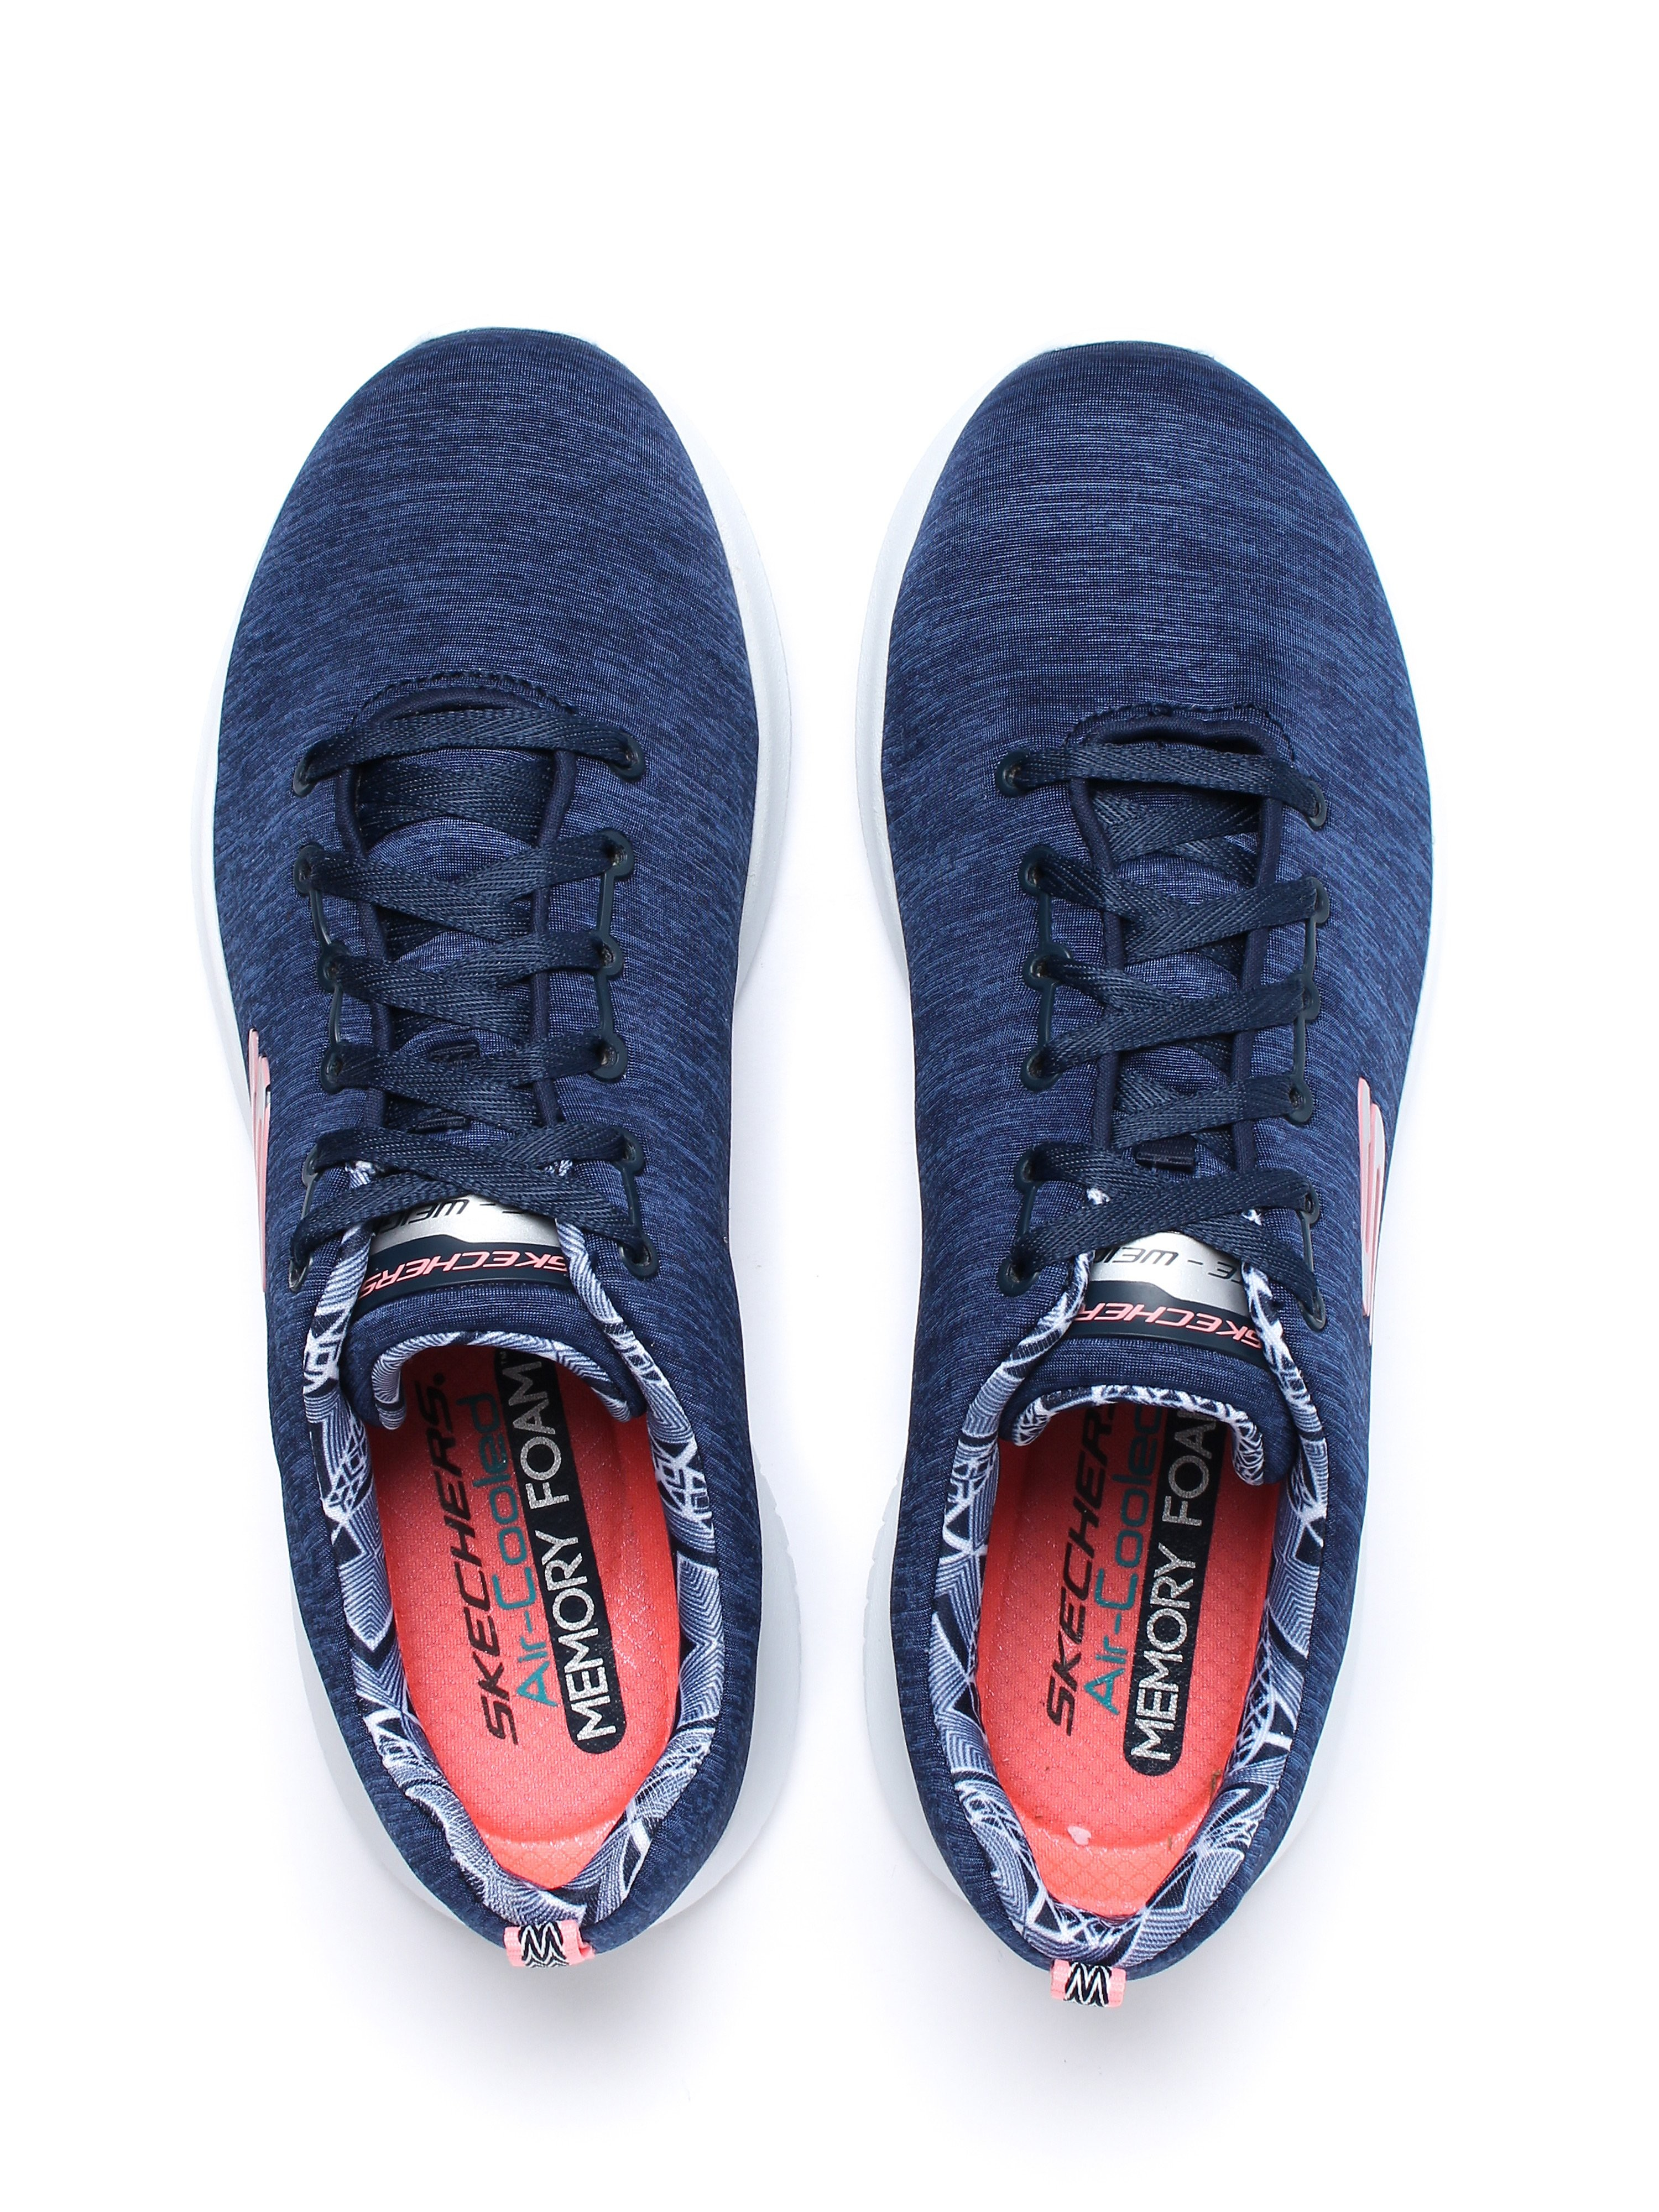 Skechers Women's Ultra Flex First Choice Trainers - Navy